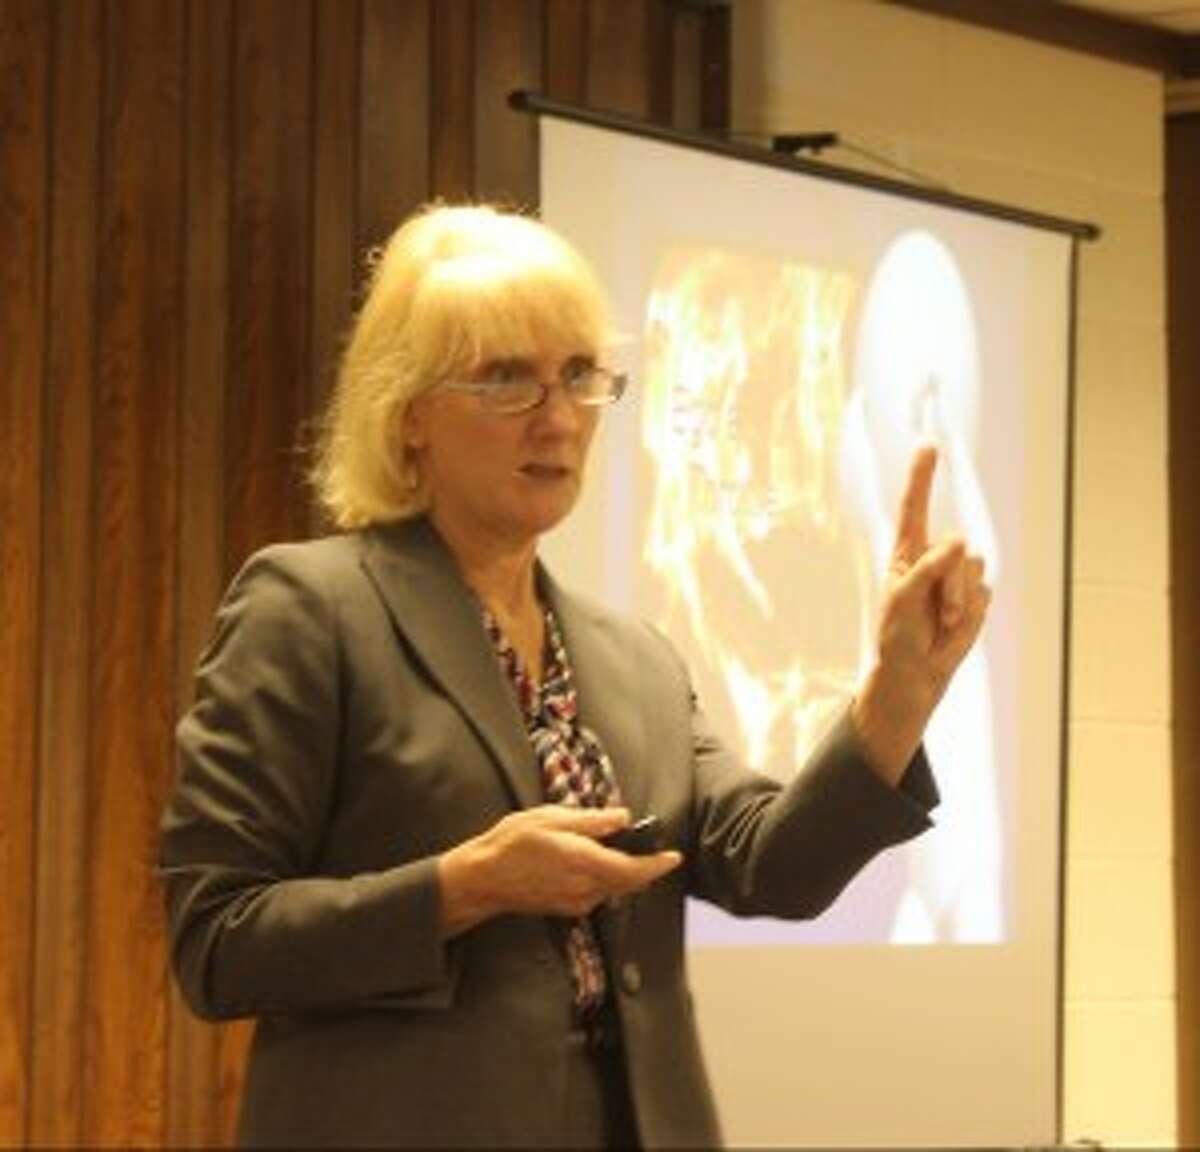 Joan Vestrand, who is the dean at Cooley Law School, was the primary speaker for the Restorative Justice program on Wednesday at the First Congregational Church in Benzonia. (Robert Myers/Pioneer News Network)